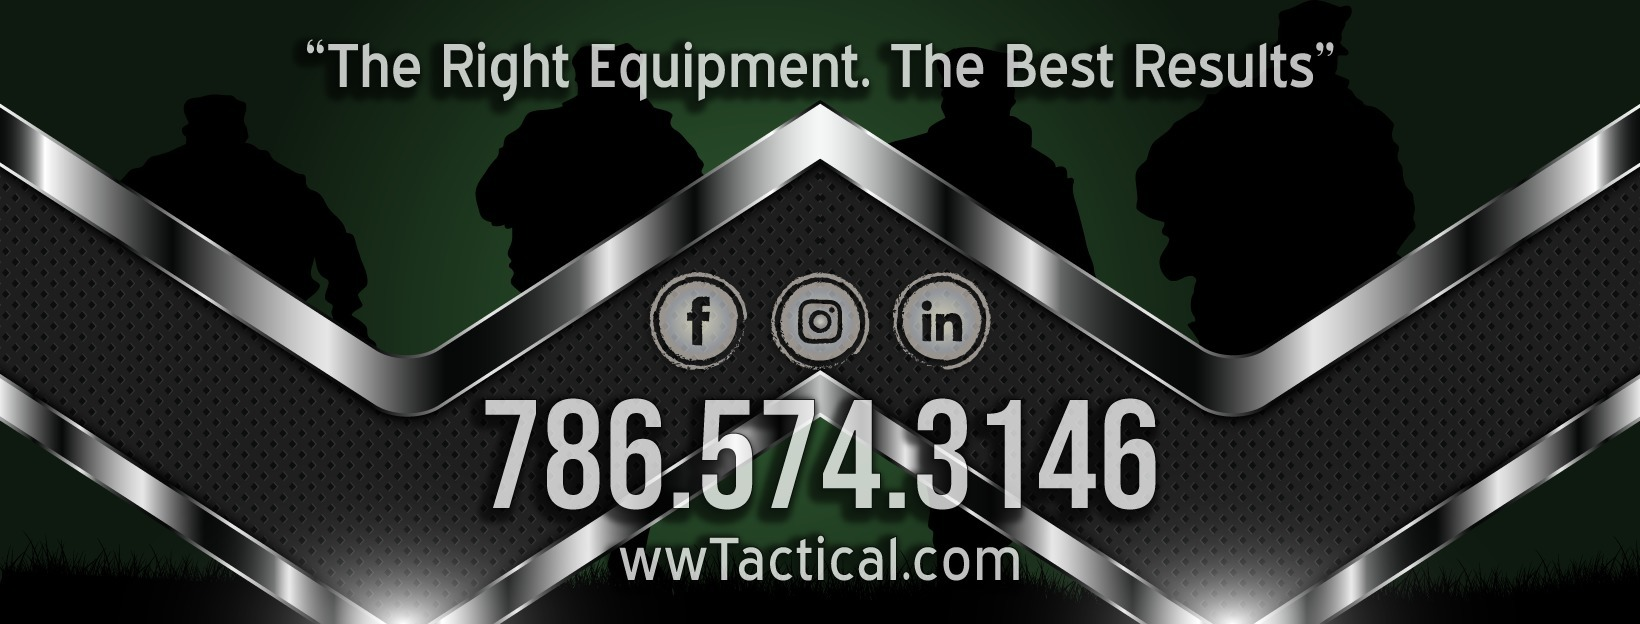 Worldwide Tactical (@wwtactical) Cover Image